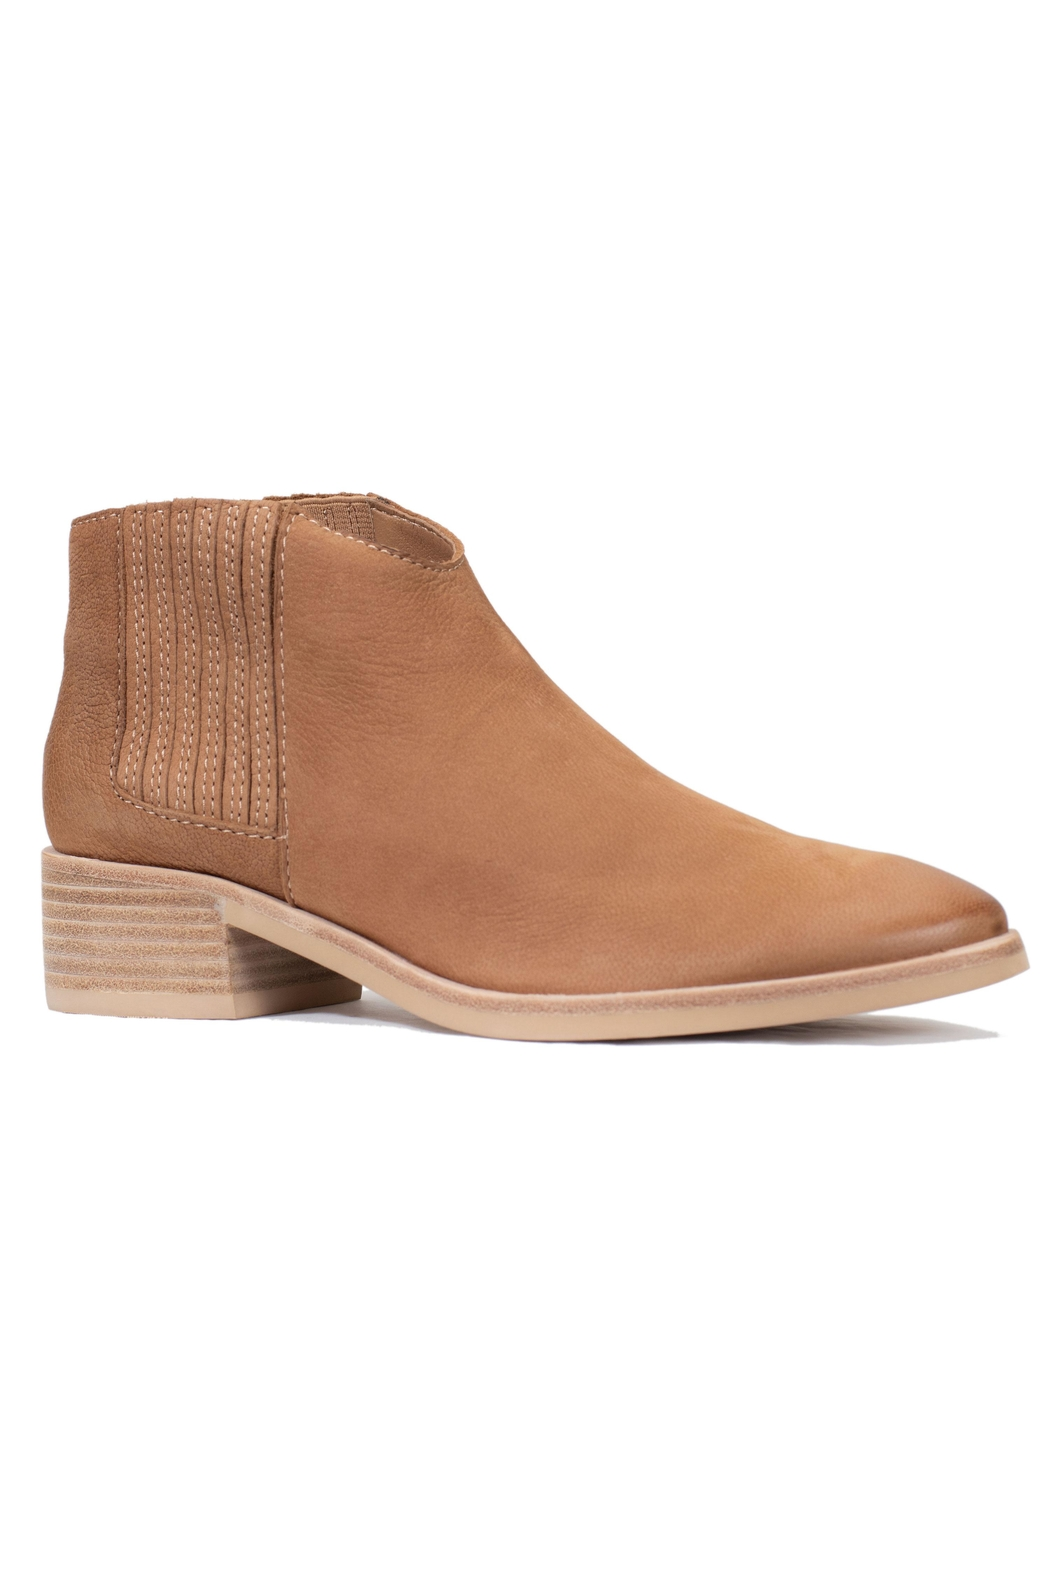 Dolce Vita Towne Booties - Side Cropped Image